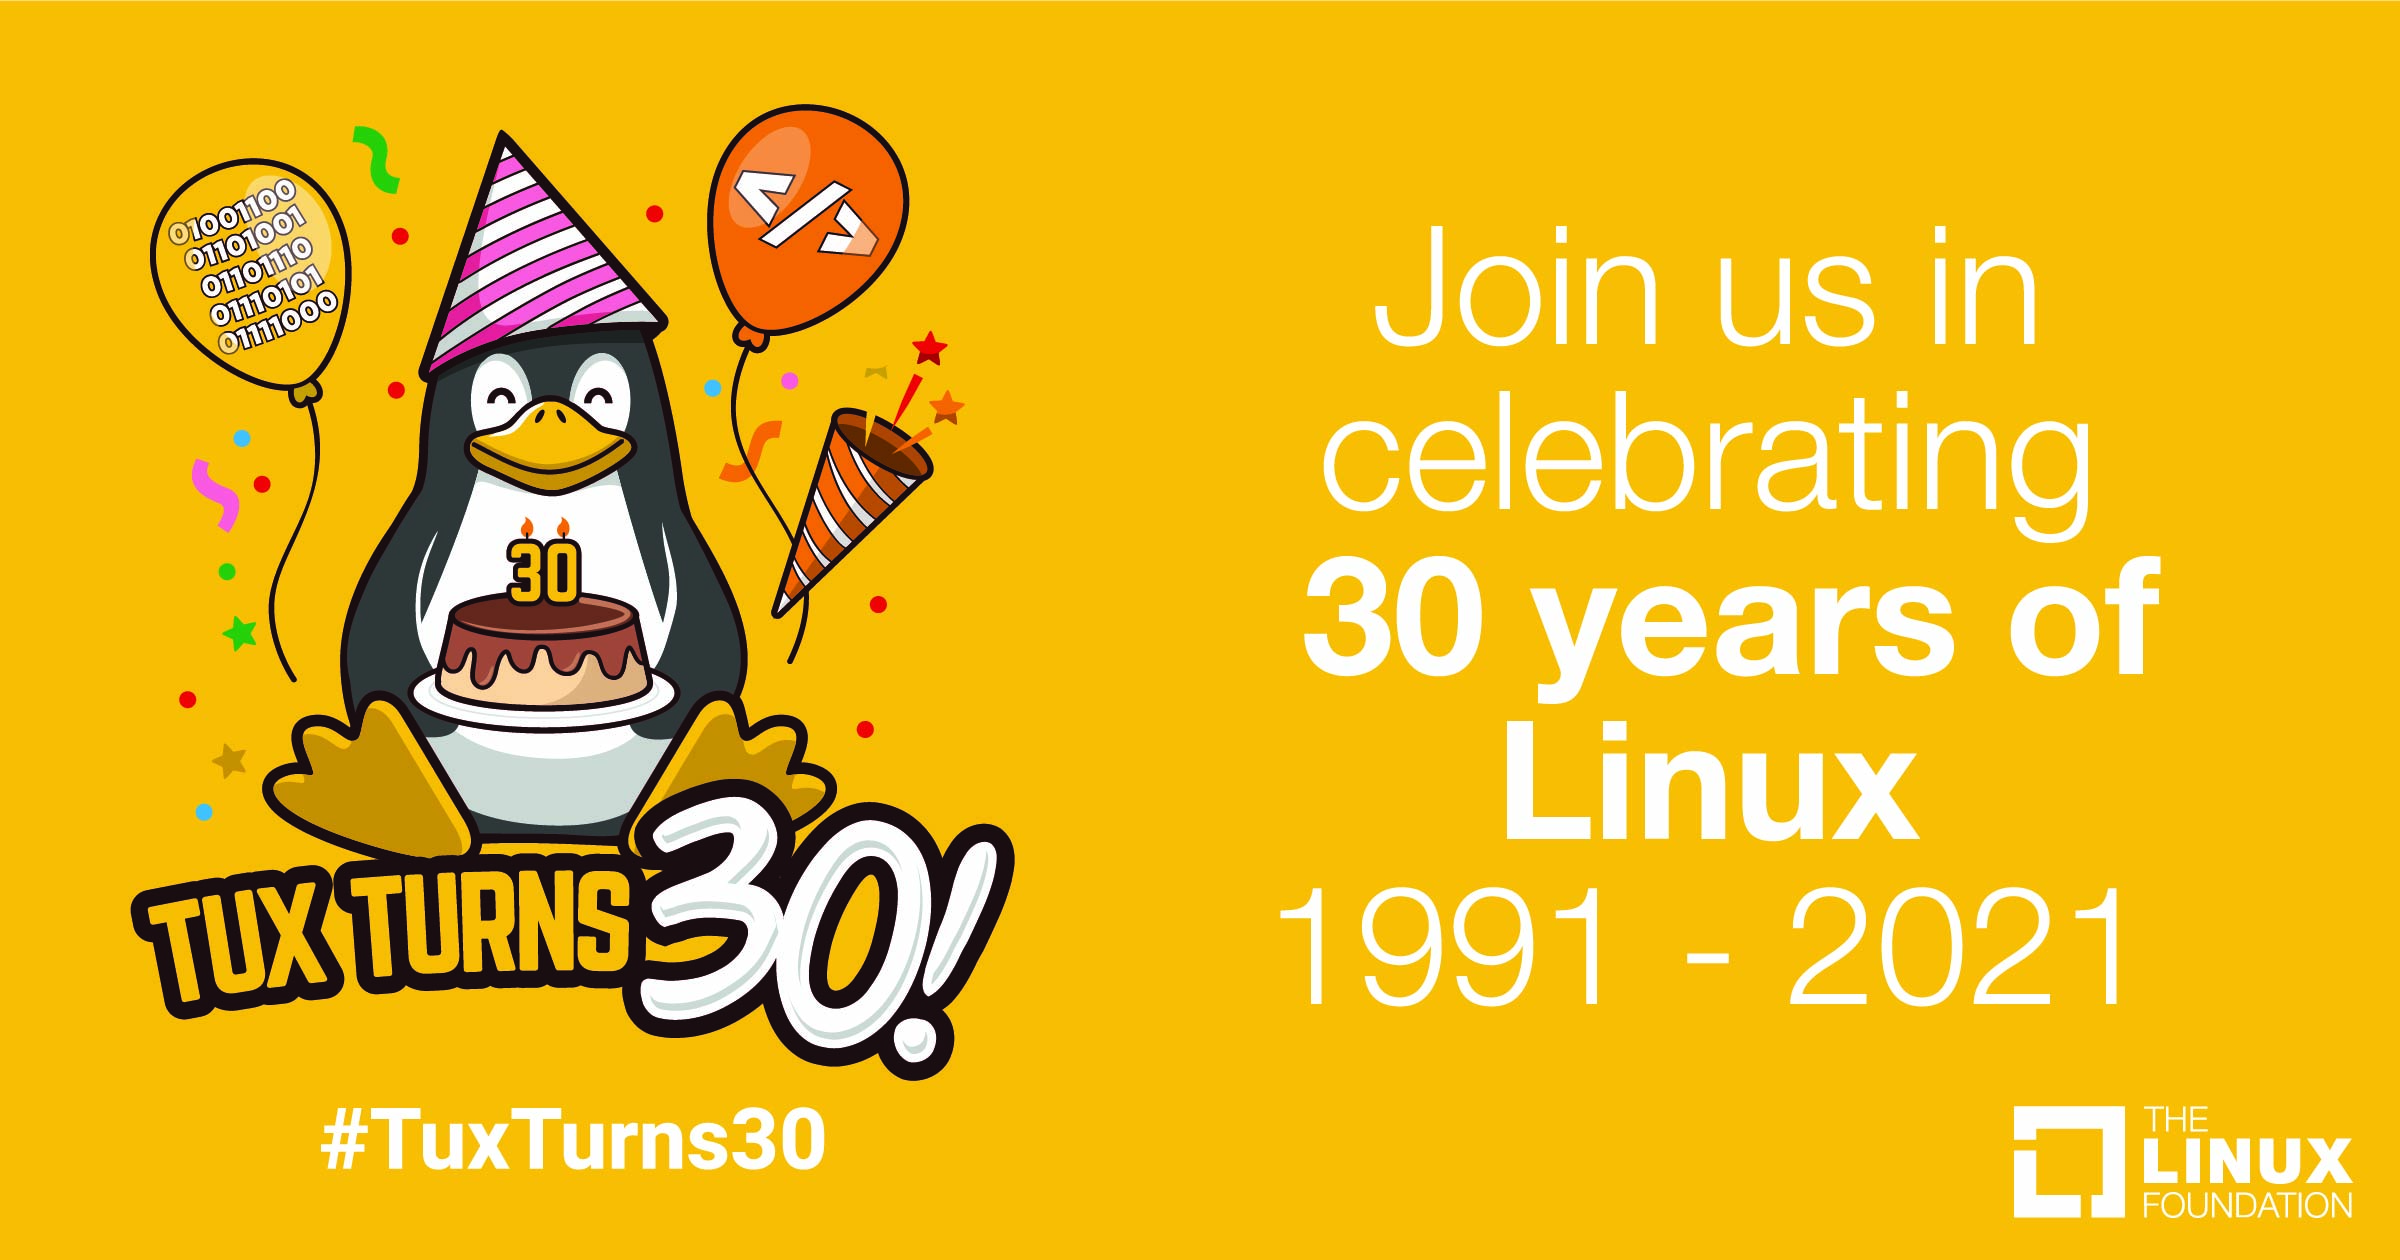 Celebrate 30 years of Linux